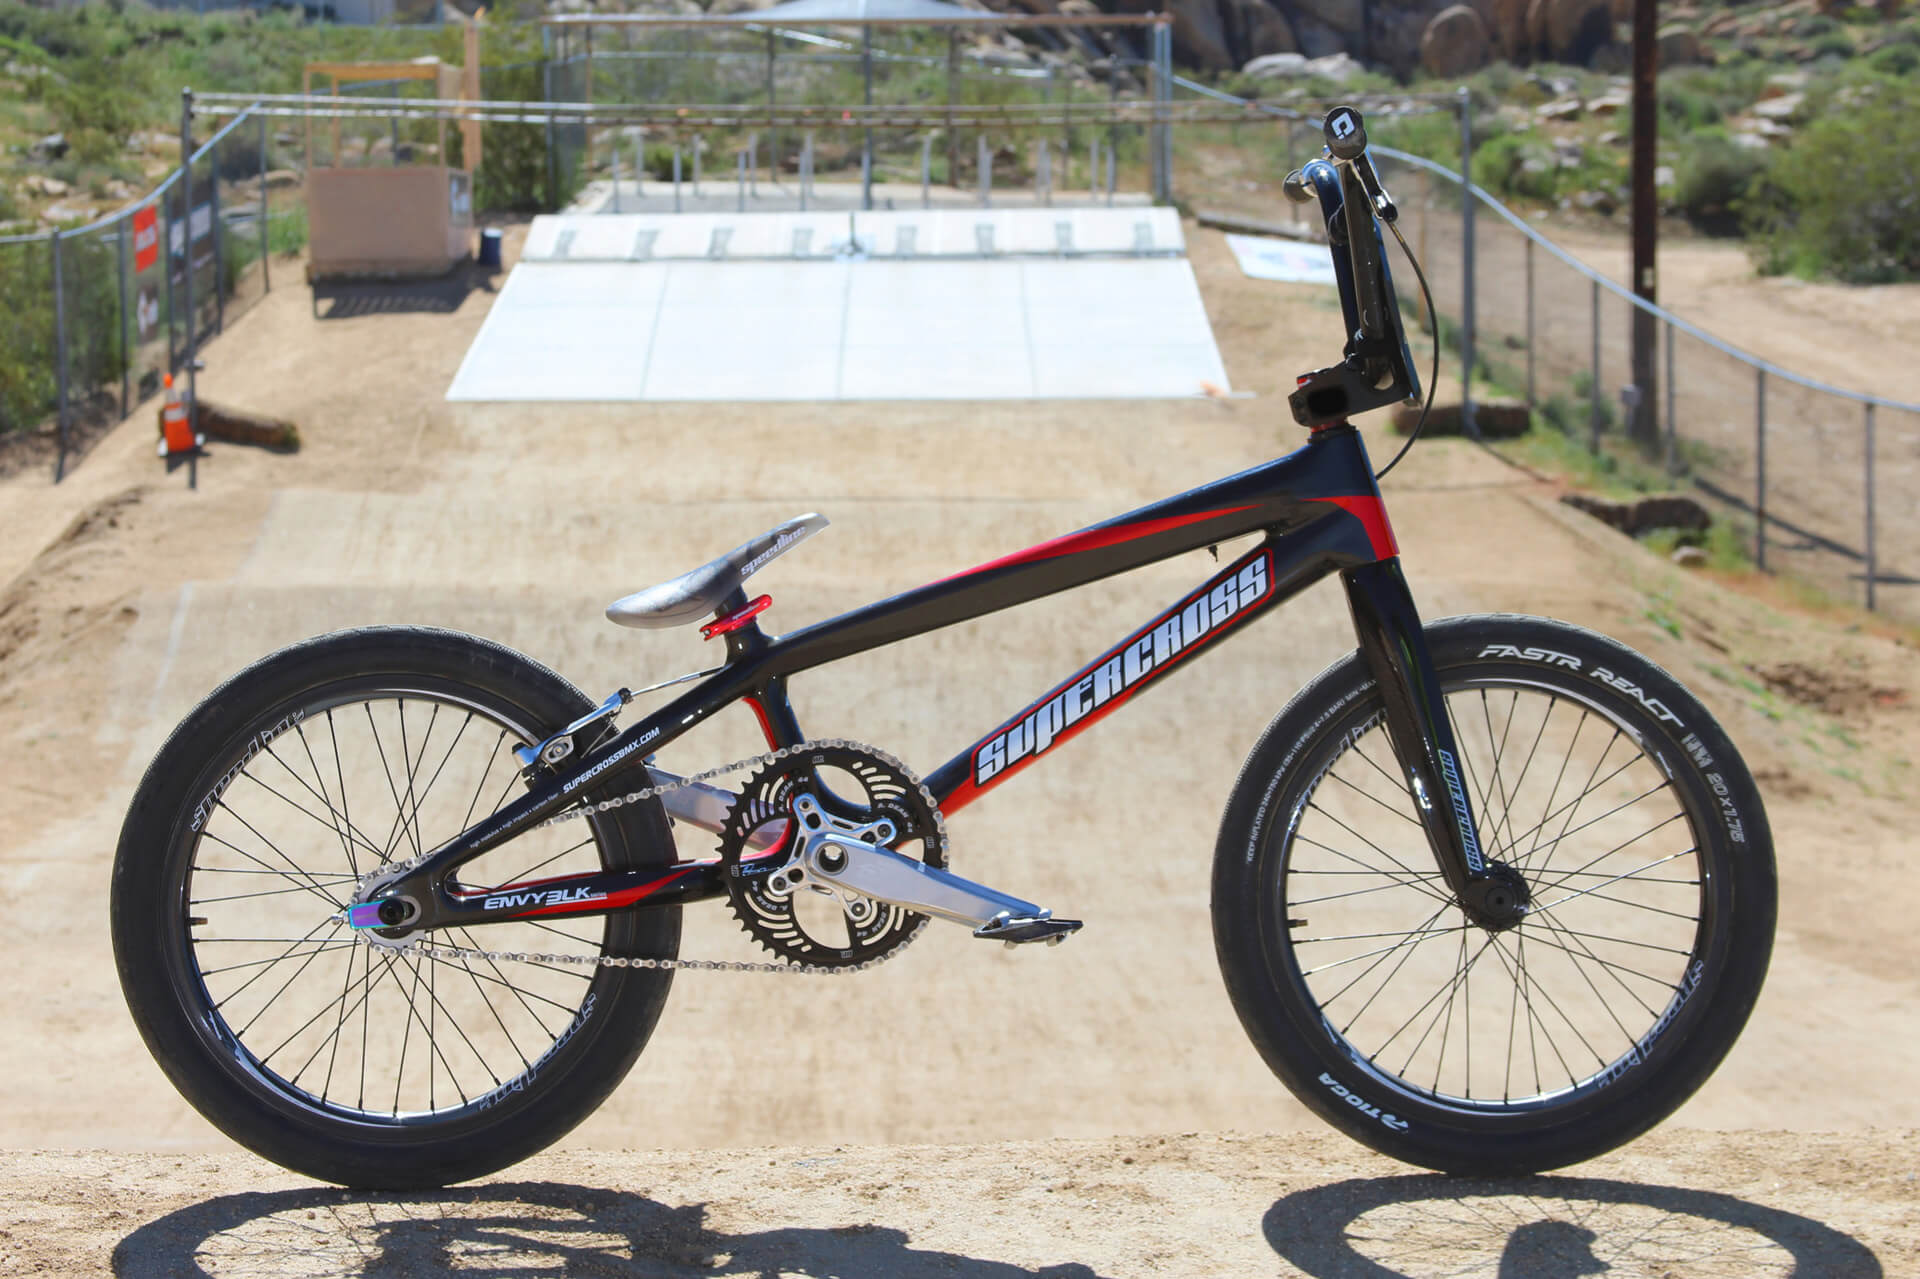 Anthony Dean - Supercross Envy BLK